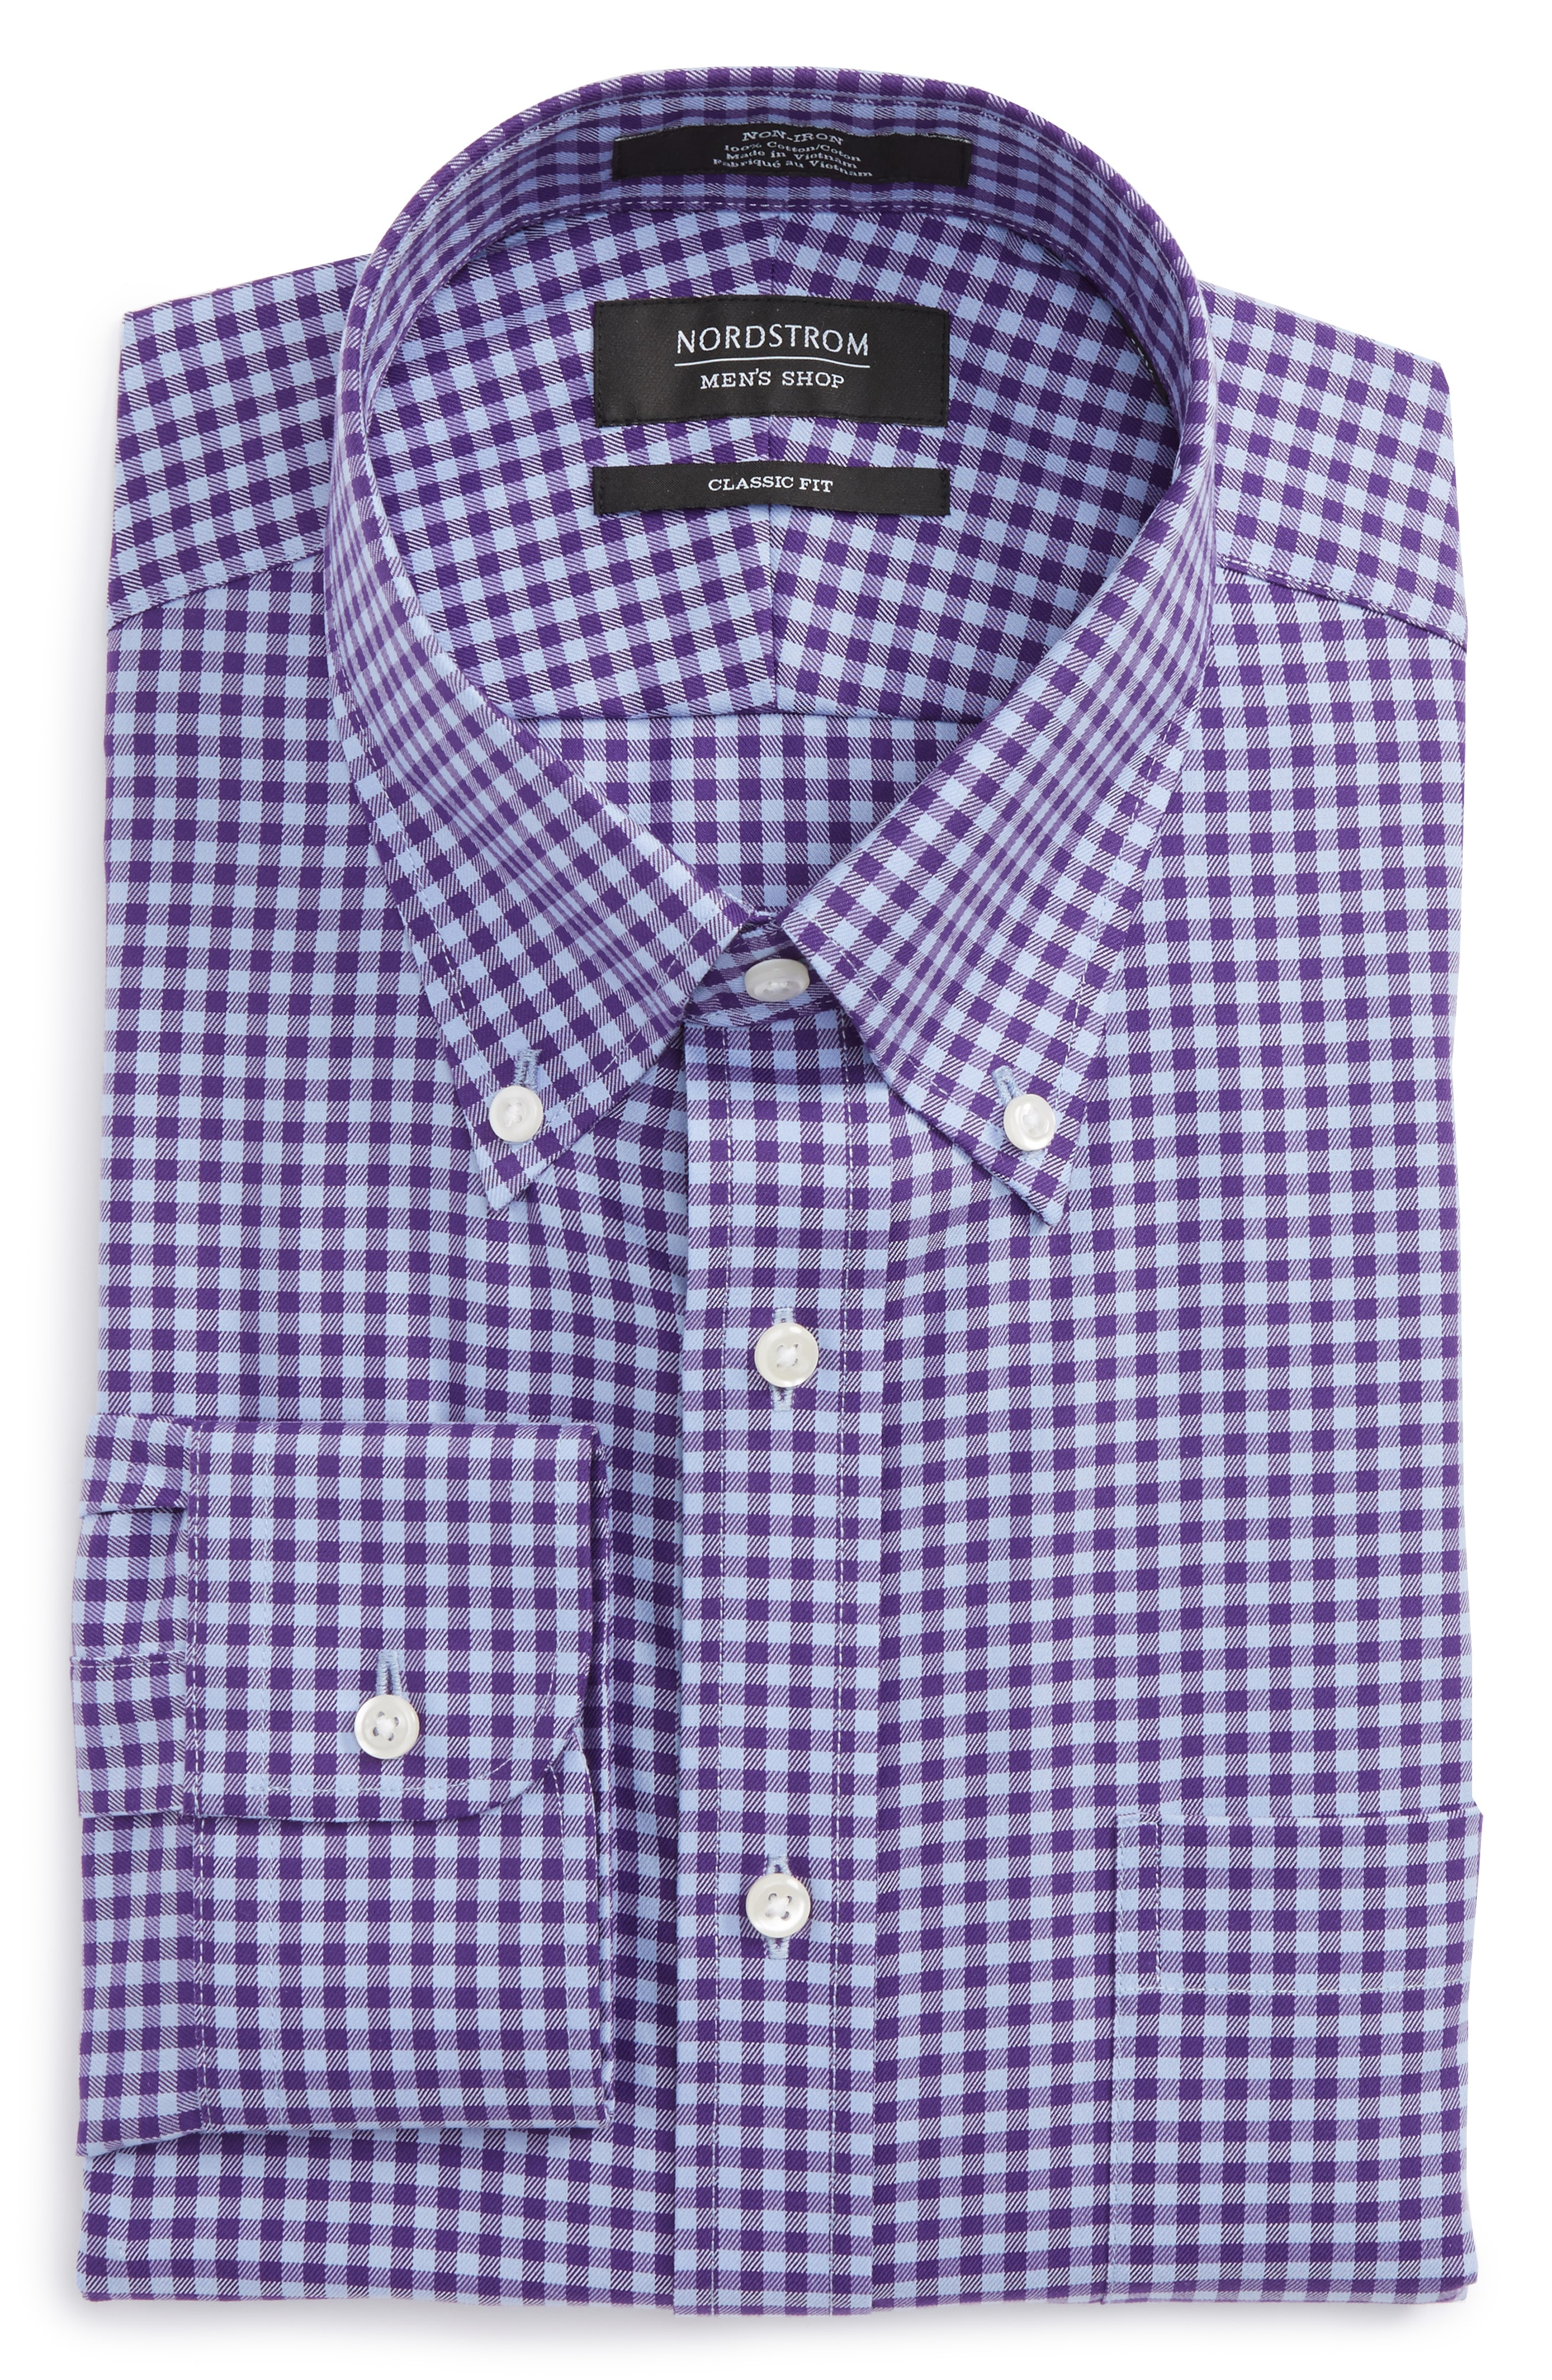 Nordstrom Men's Shop Classic Fit Non-Iron Gingham Dress Shirt (Online Only)